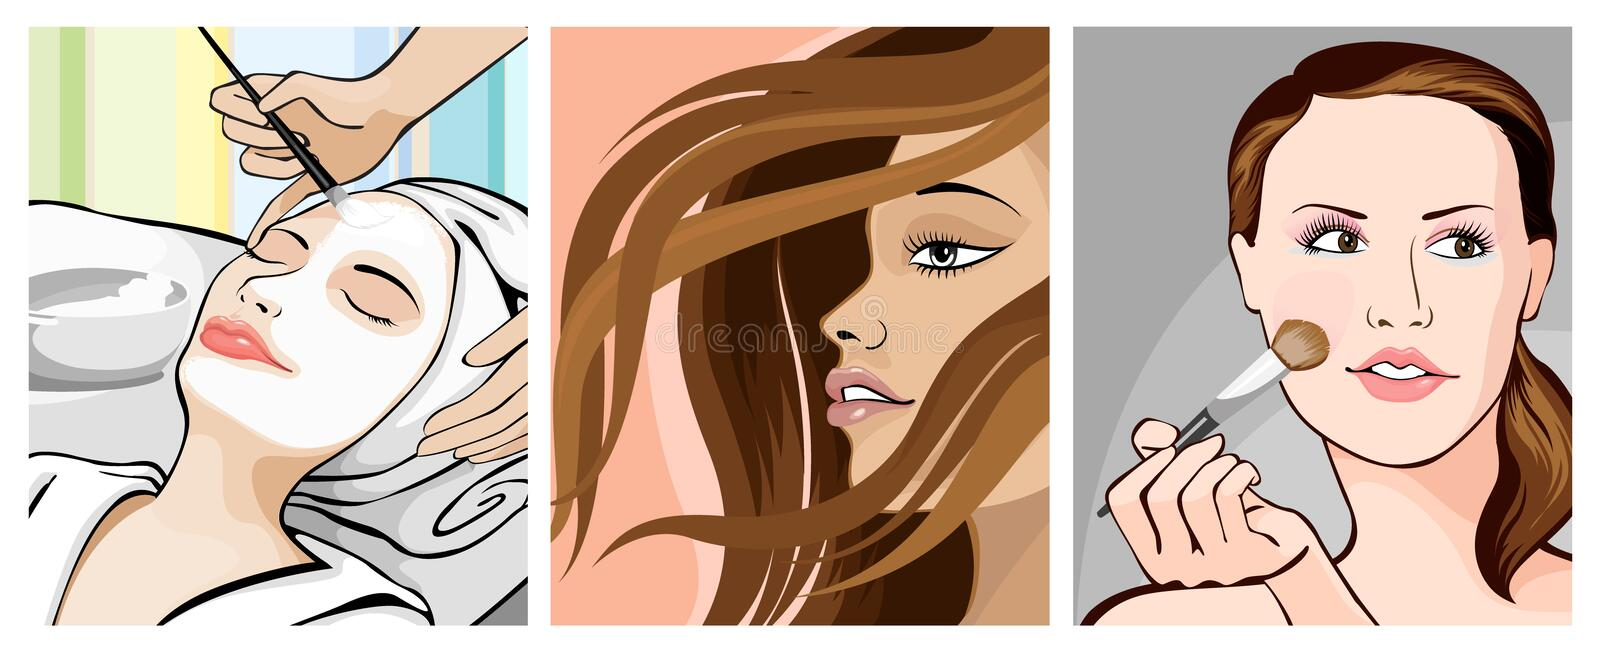 Makeover. Illustration of ladies in beauty makeover icon